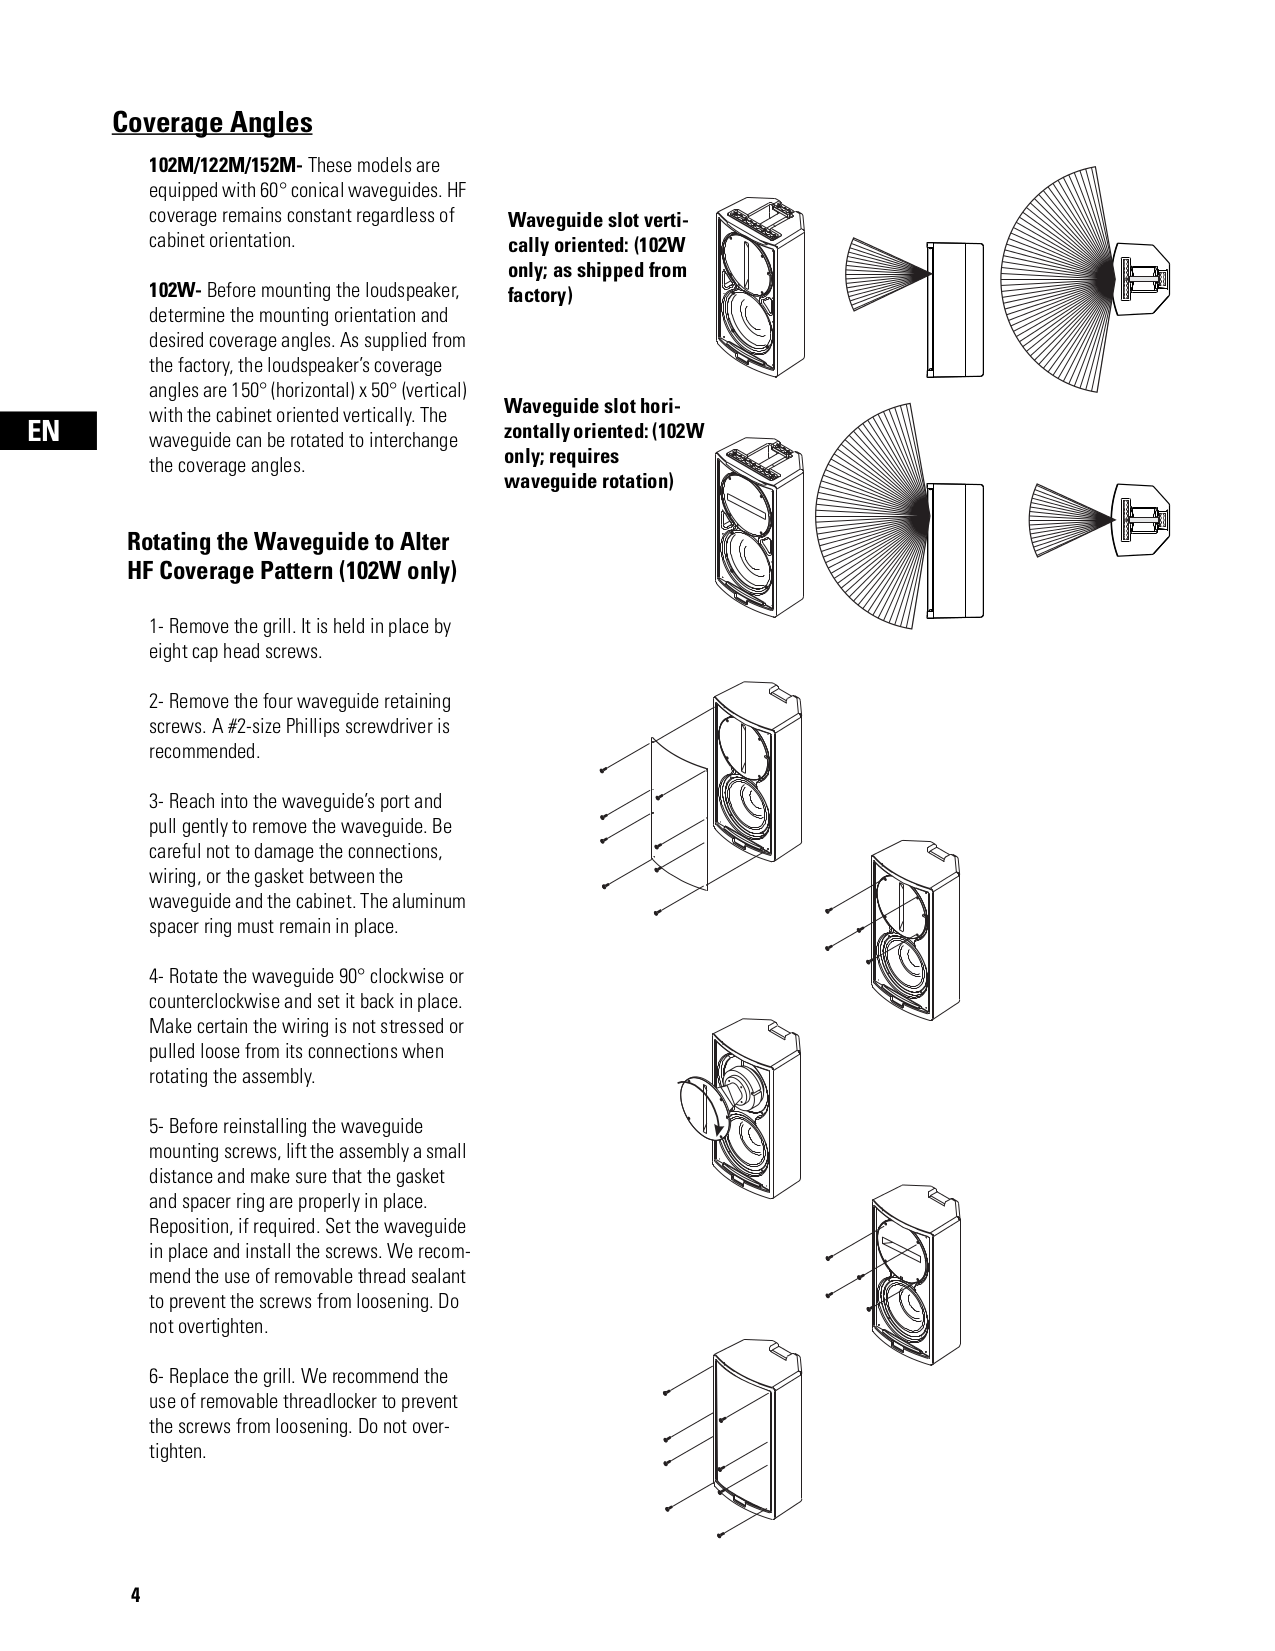 PDF manual for QSC Speaker ISIS W-122M